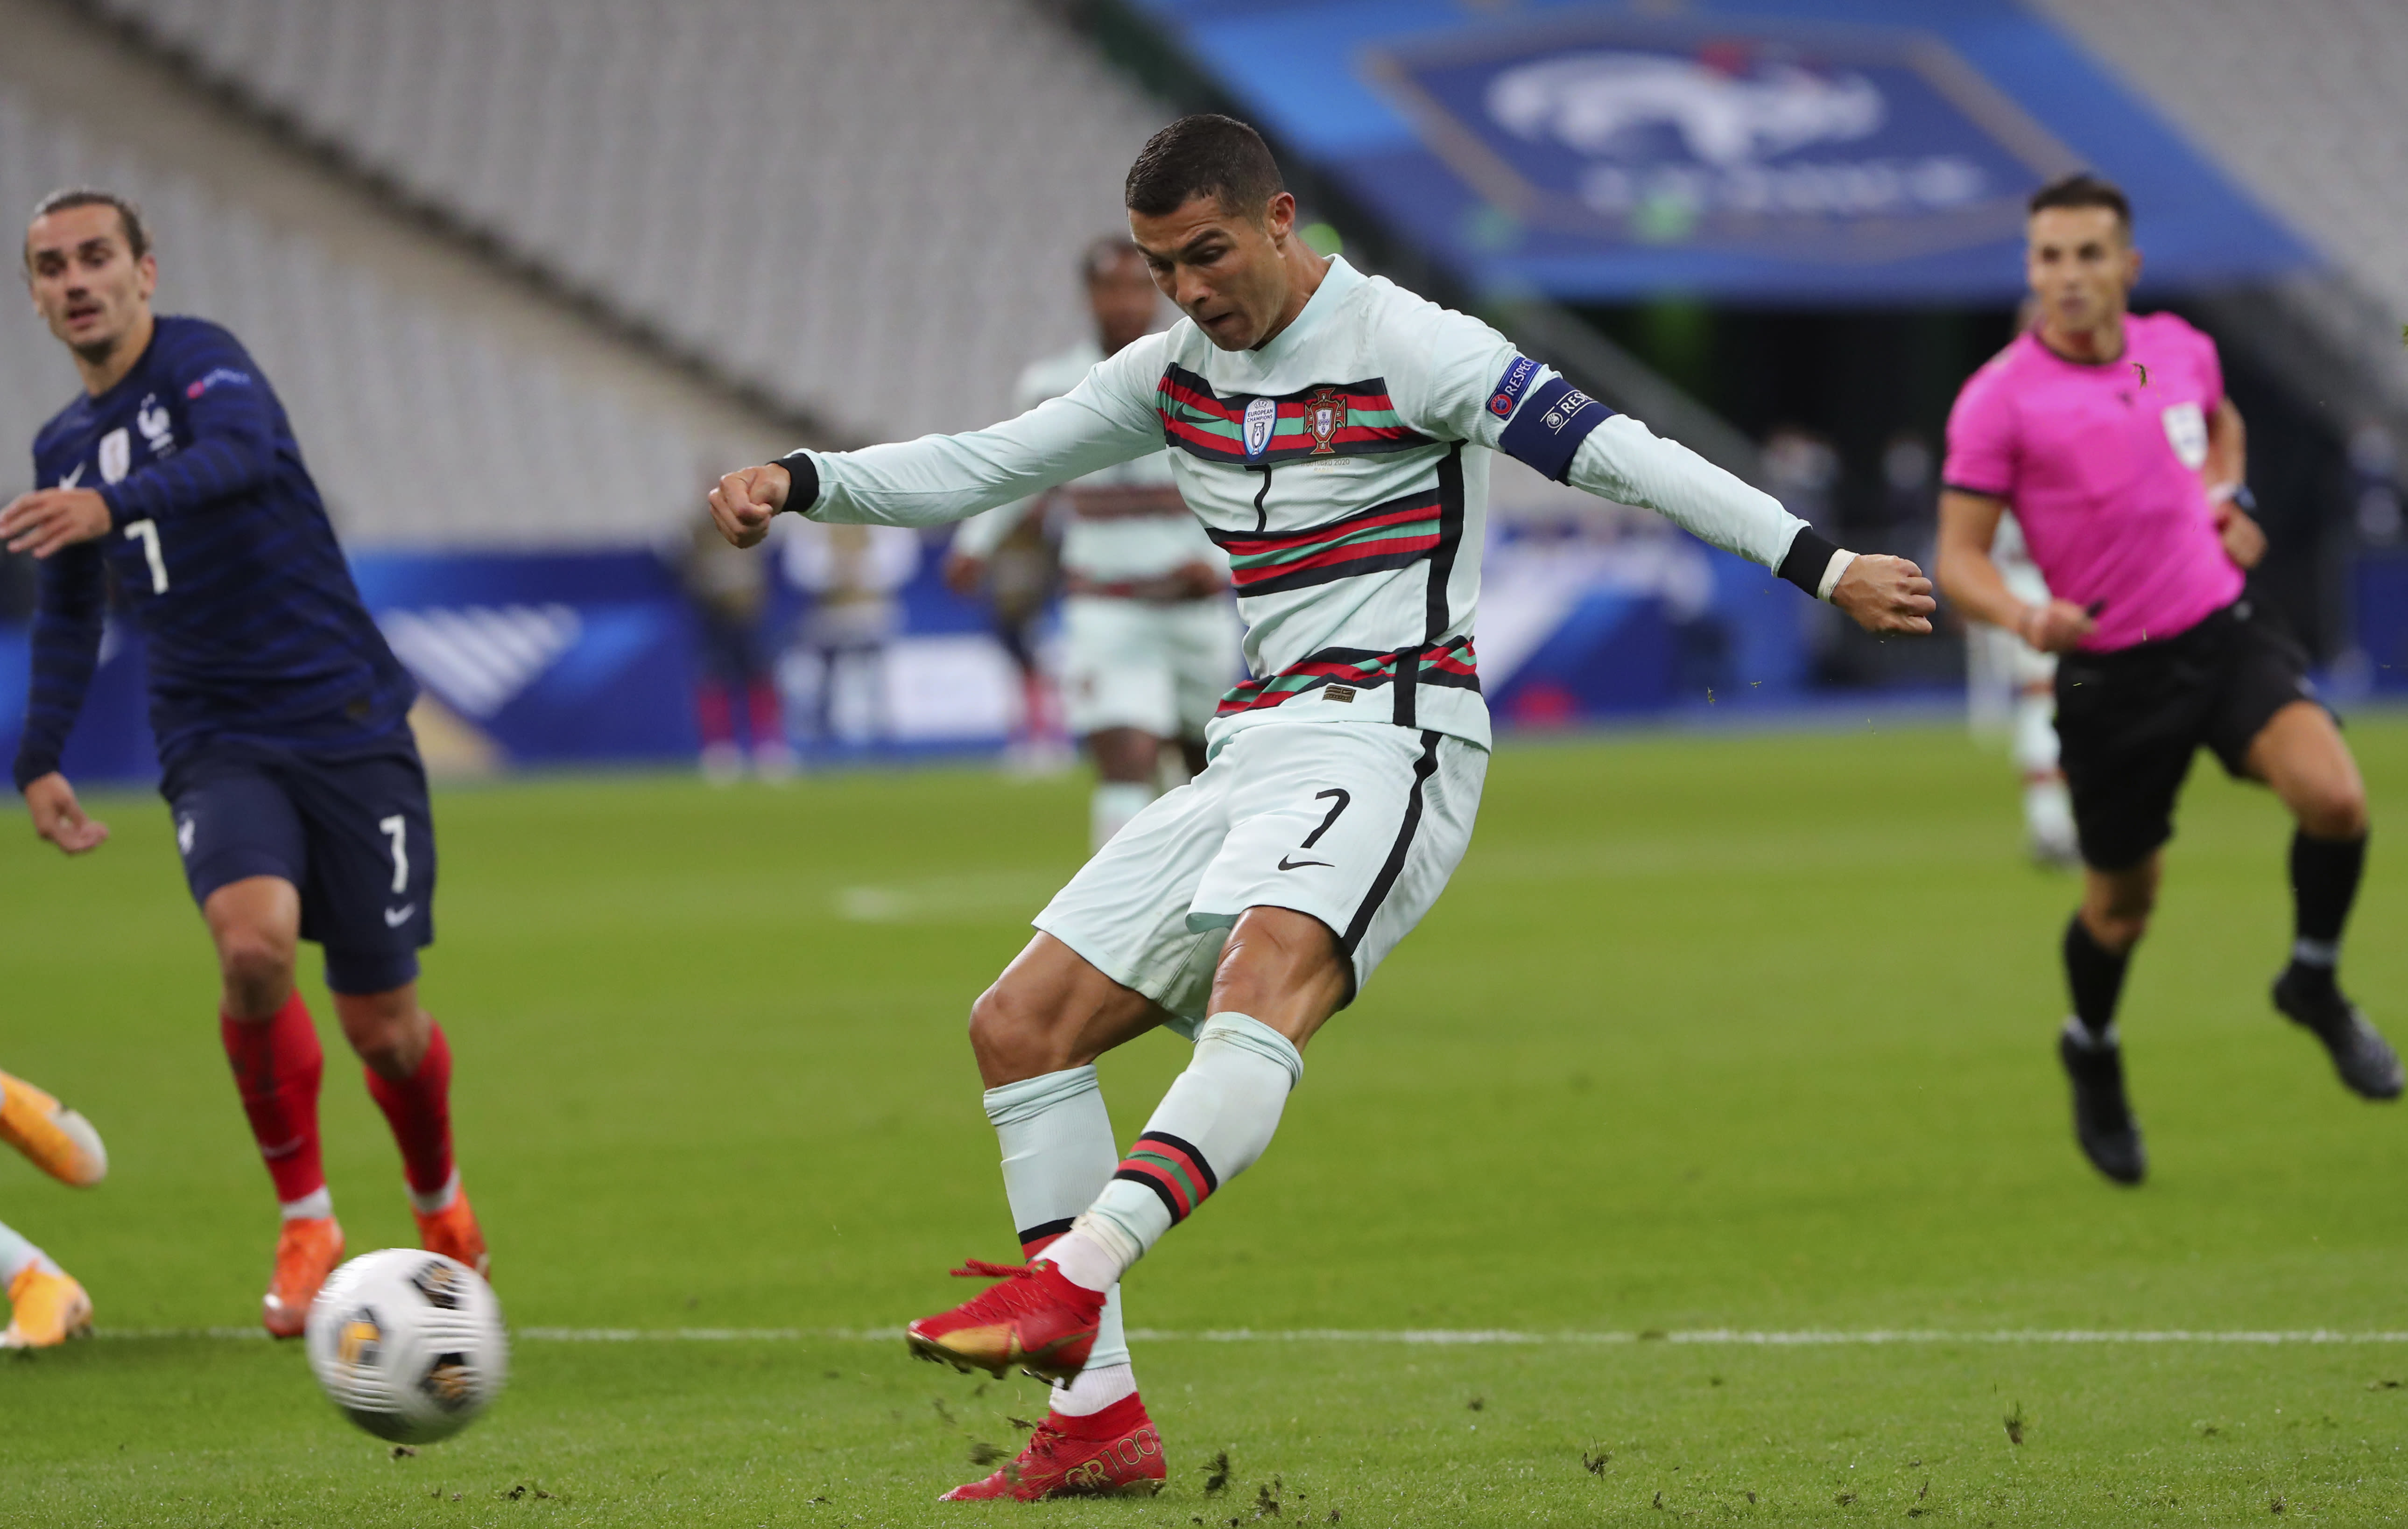 Portugal's Cristiano Ronaldo attempts a shot at goal during the UEFA Nations League soccer match between France and Portugal at the Stade de France in Saint-Denis, north of Paris, France, Sunday, Oct. 11, 2020. (AP Photo/Thibault Camus)